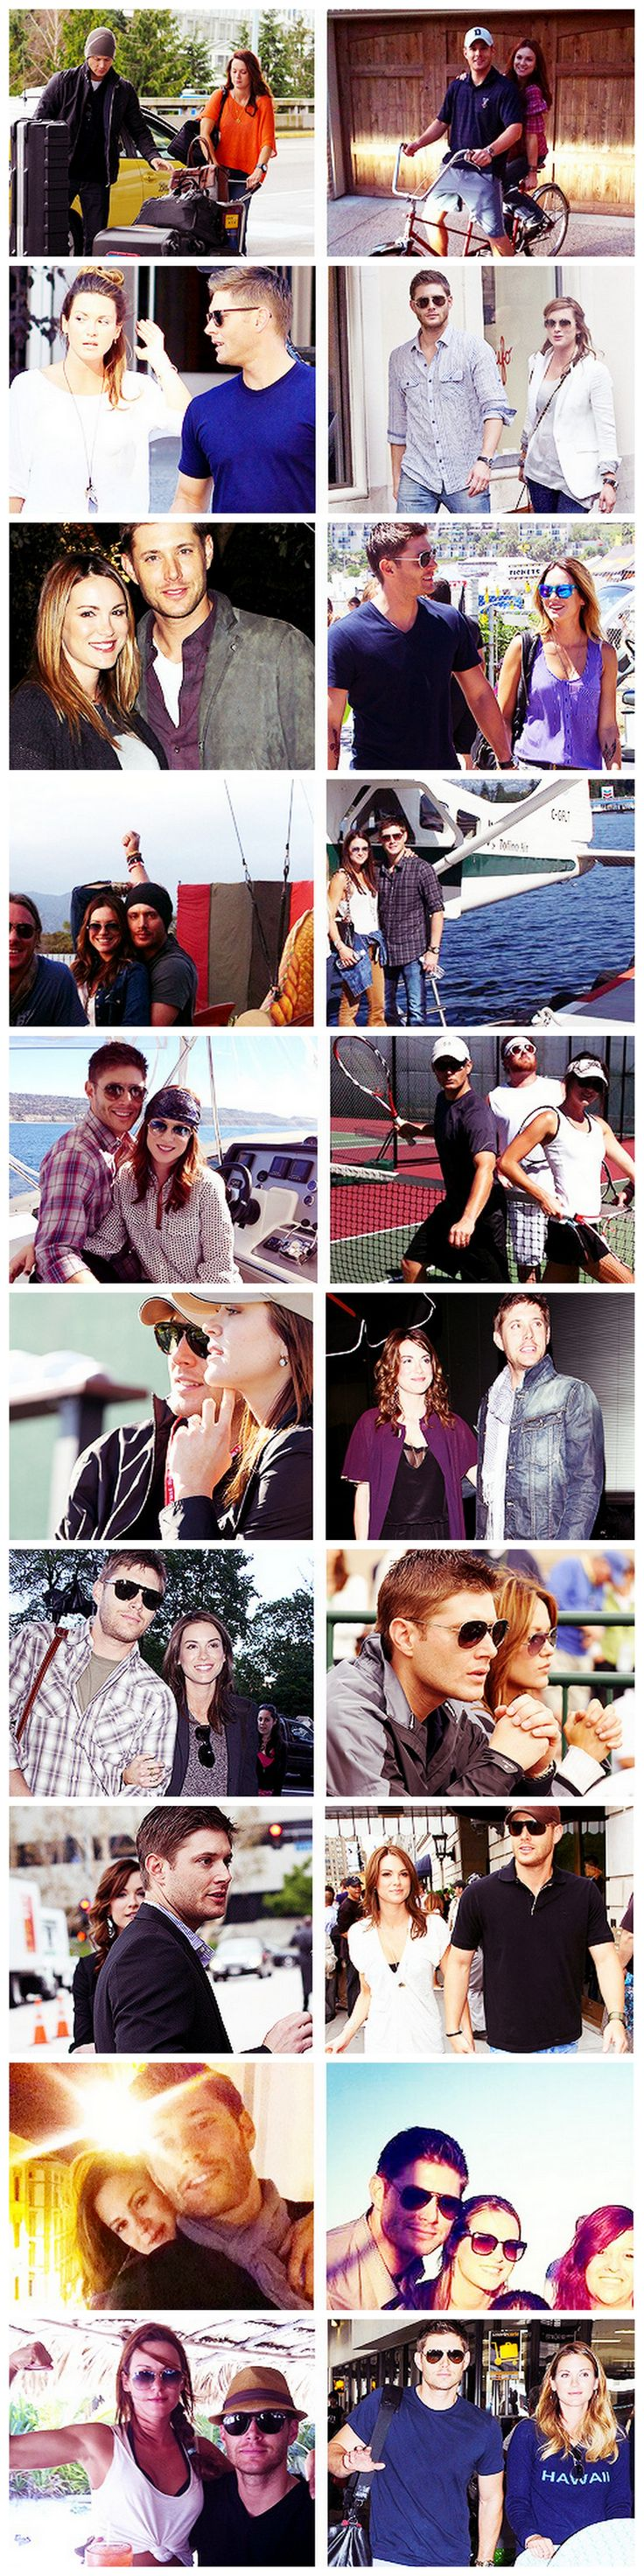 Jensen and Danneel Ackles